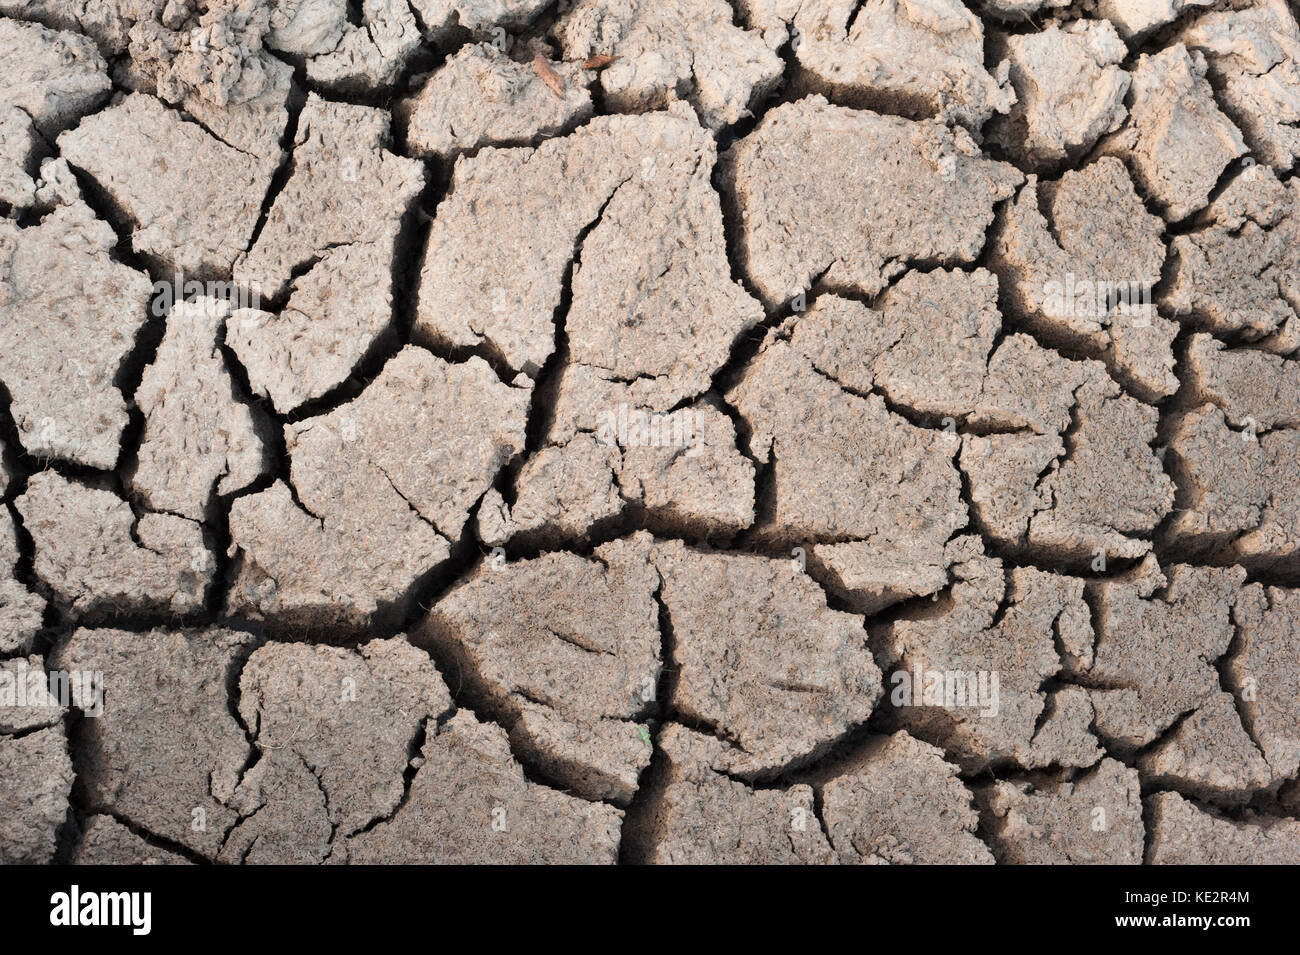 Dried mud in the Pantanal during the dry season - Stock Image